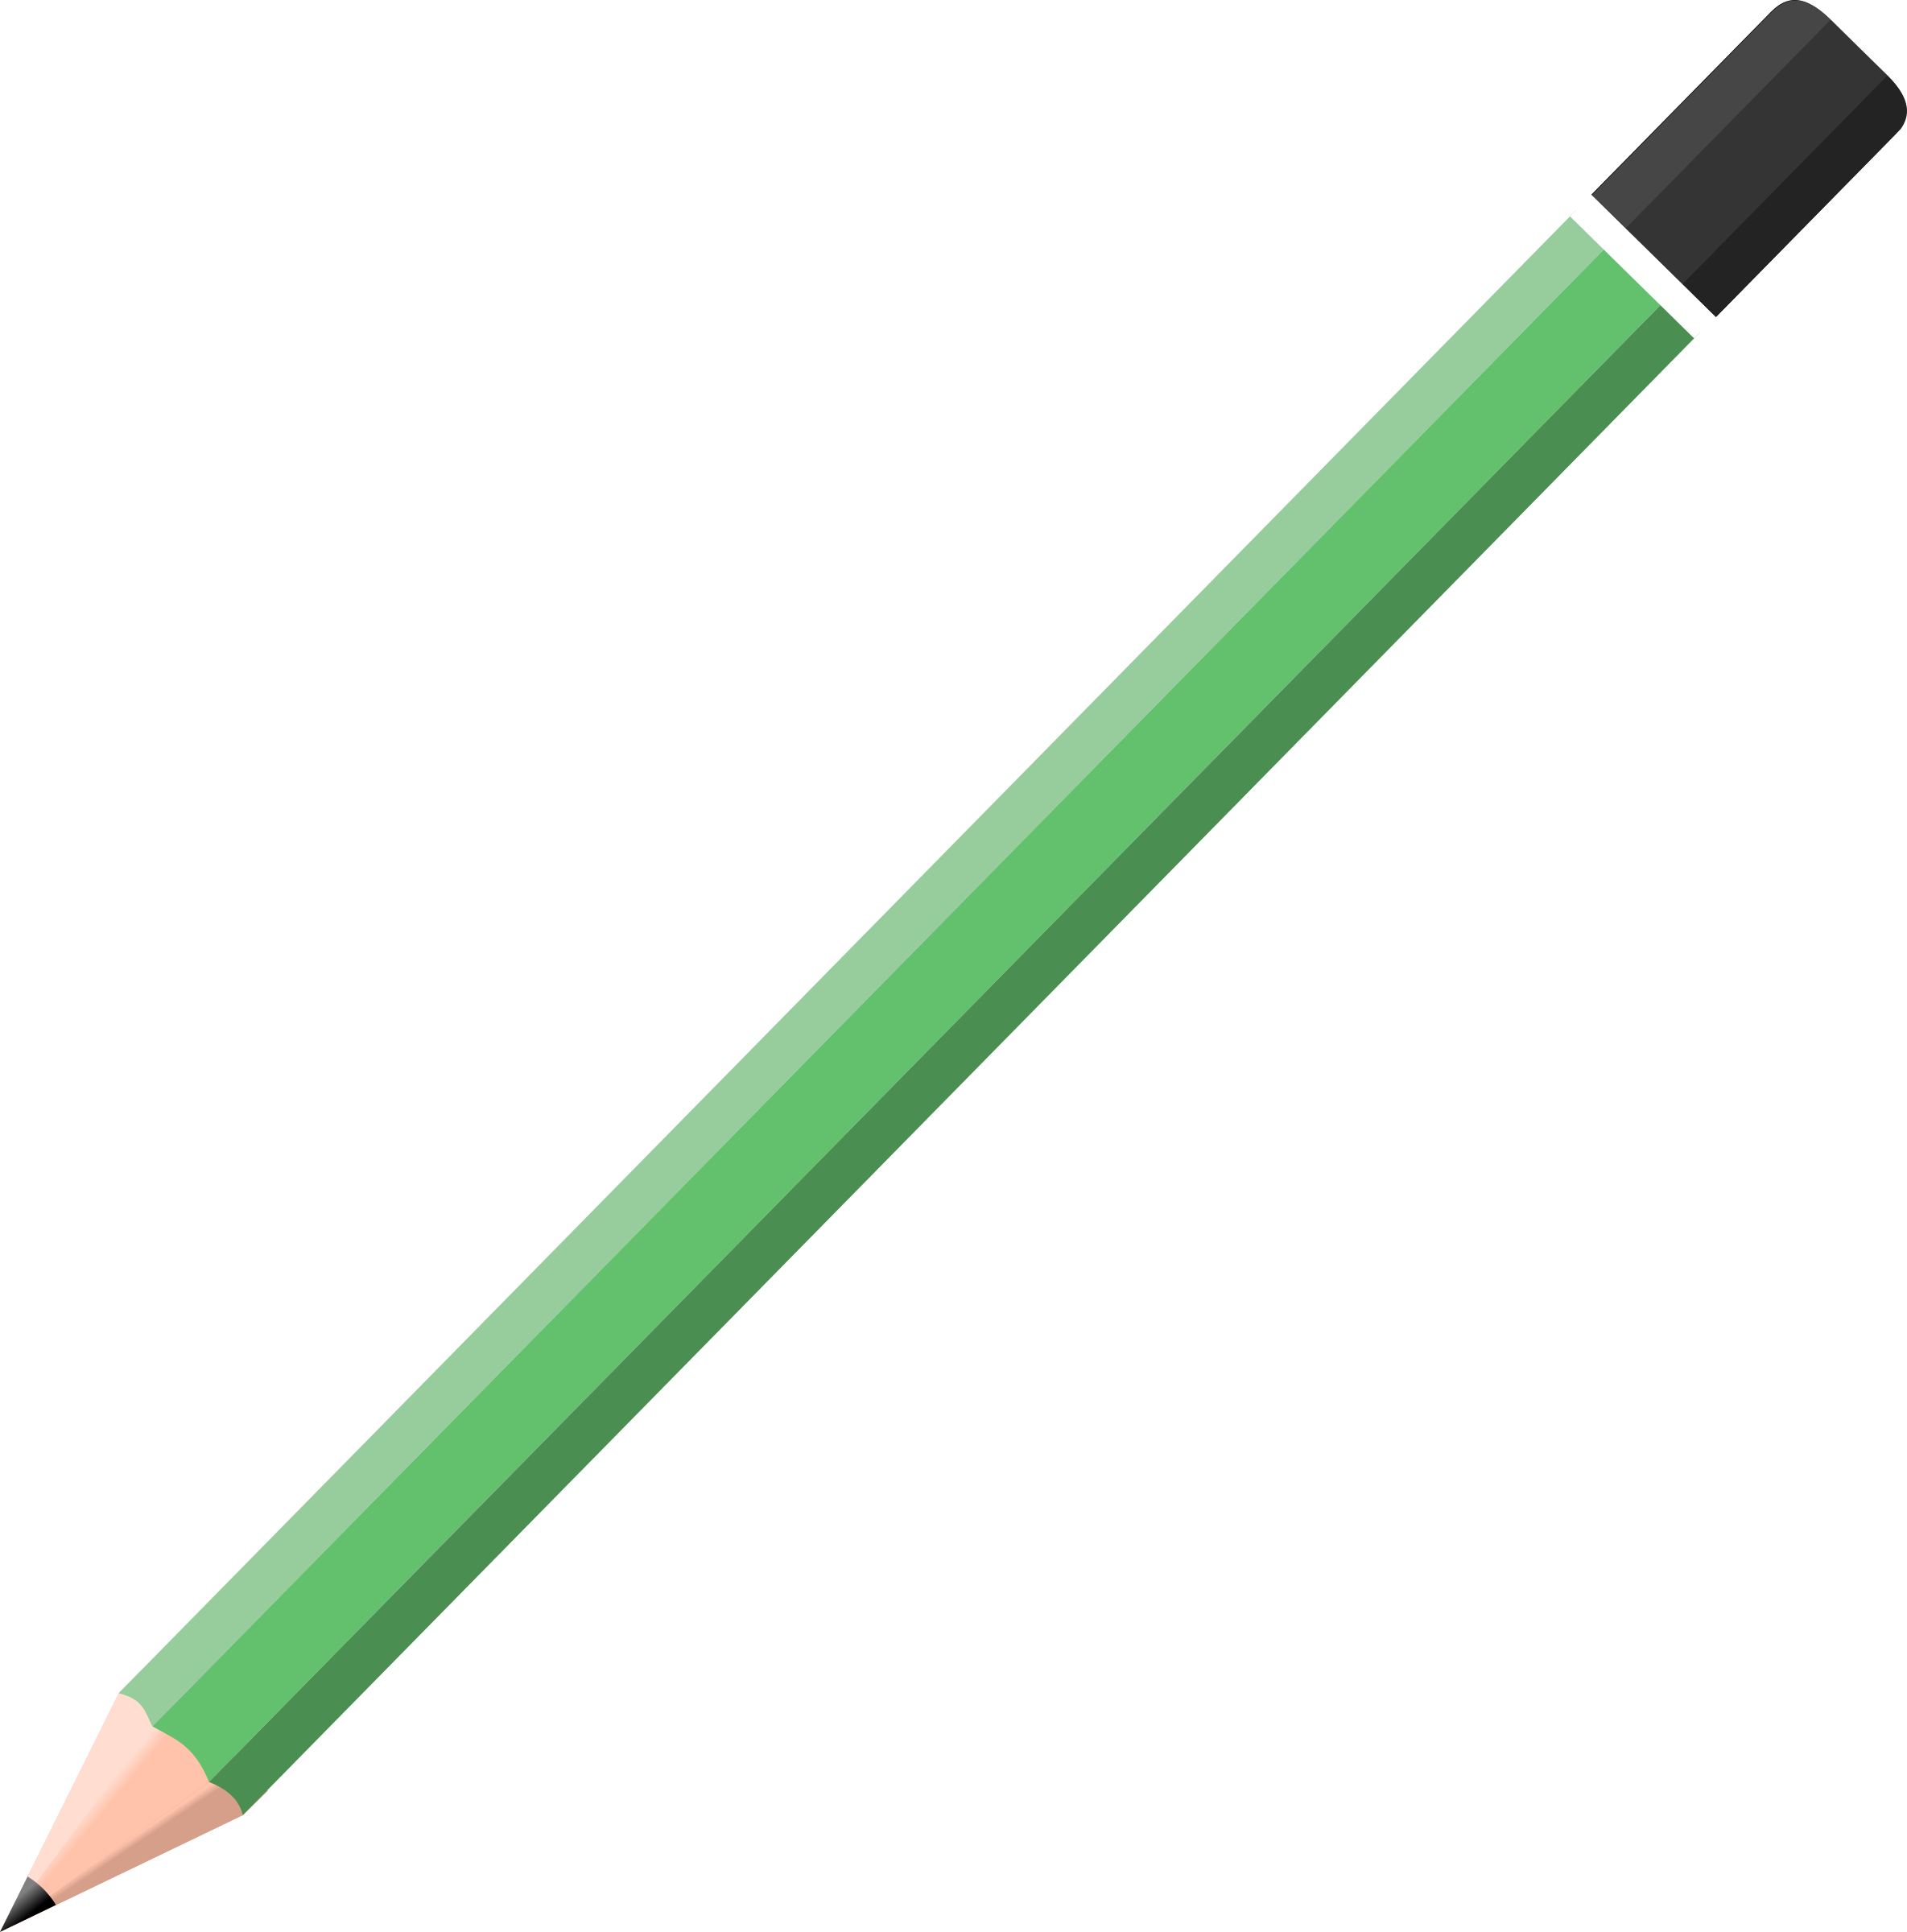 Clipart pencil four. Group